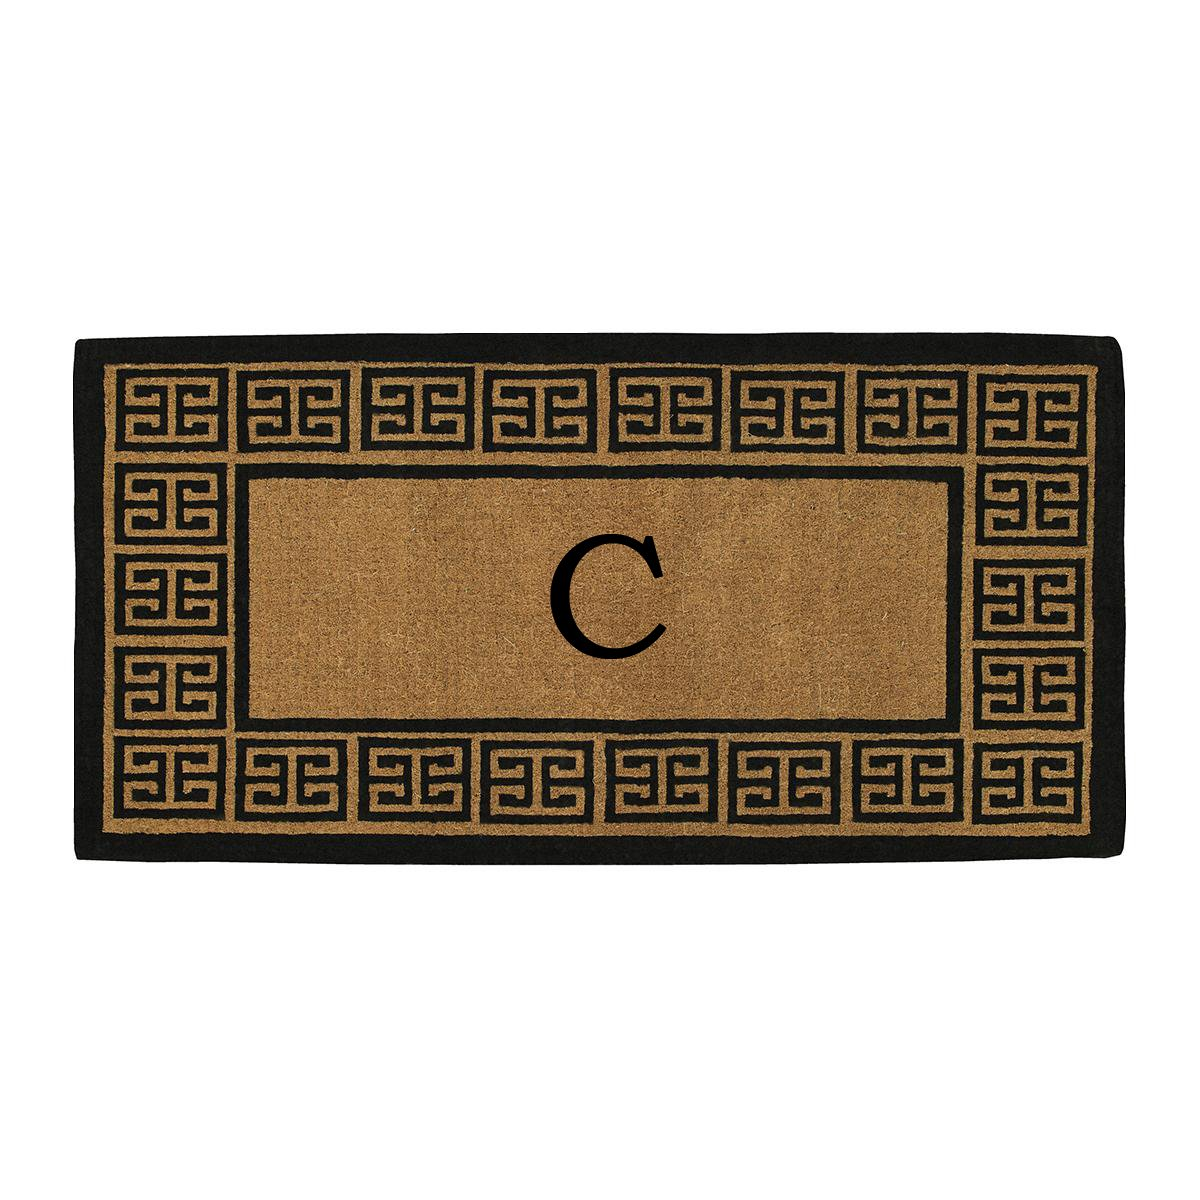 Home & More 180093672C The Grecian Extra-thick Doormat, 36'' x 72'' x 1.50'', Monogrammed Letter C, Natural/Black